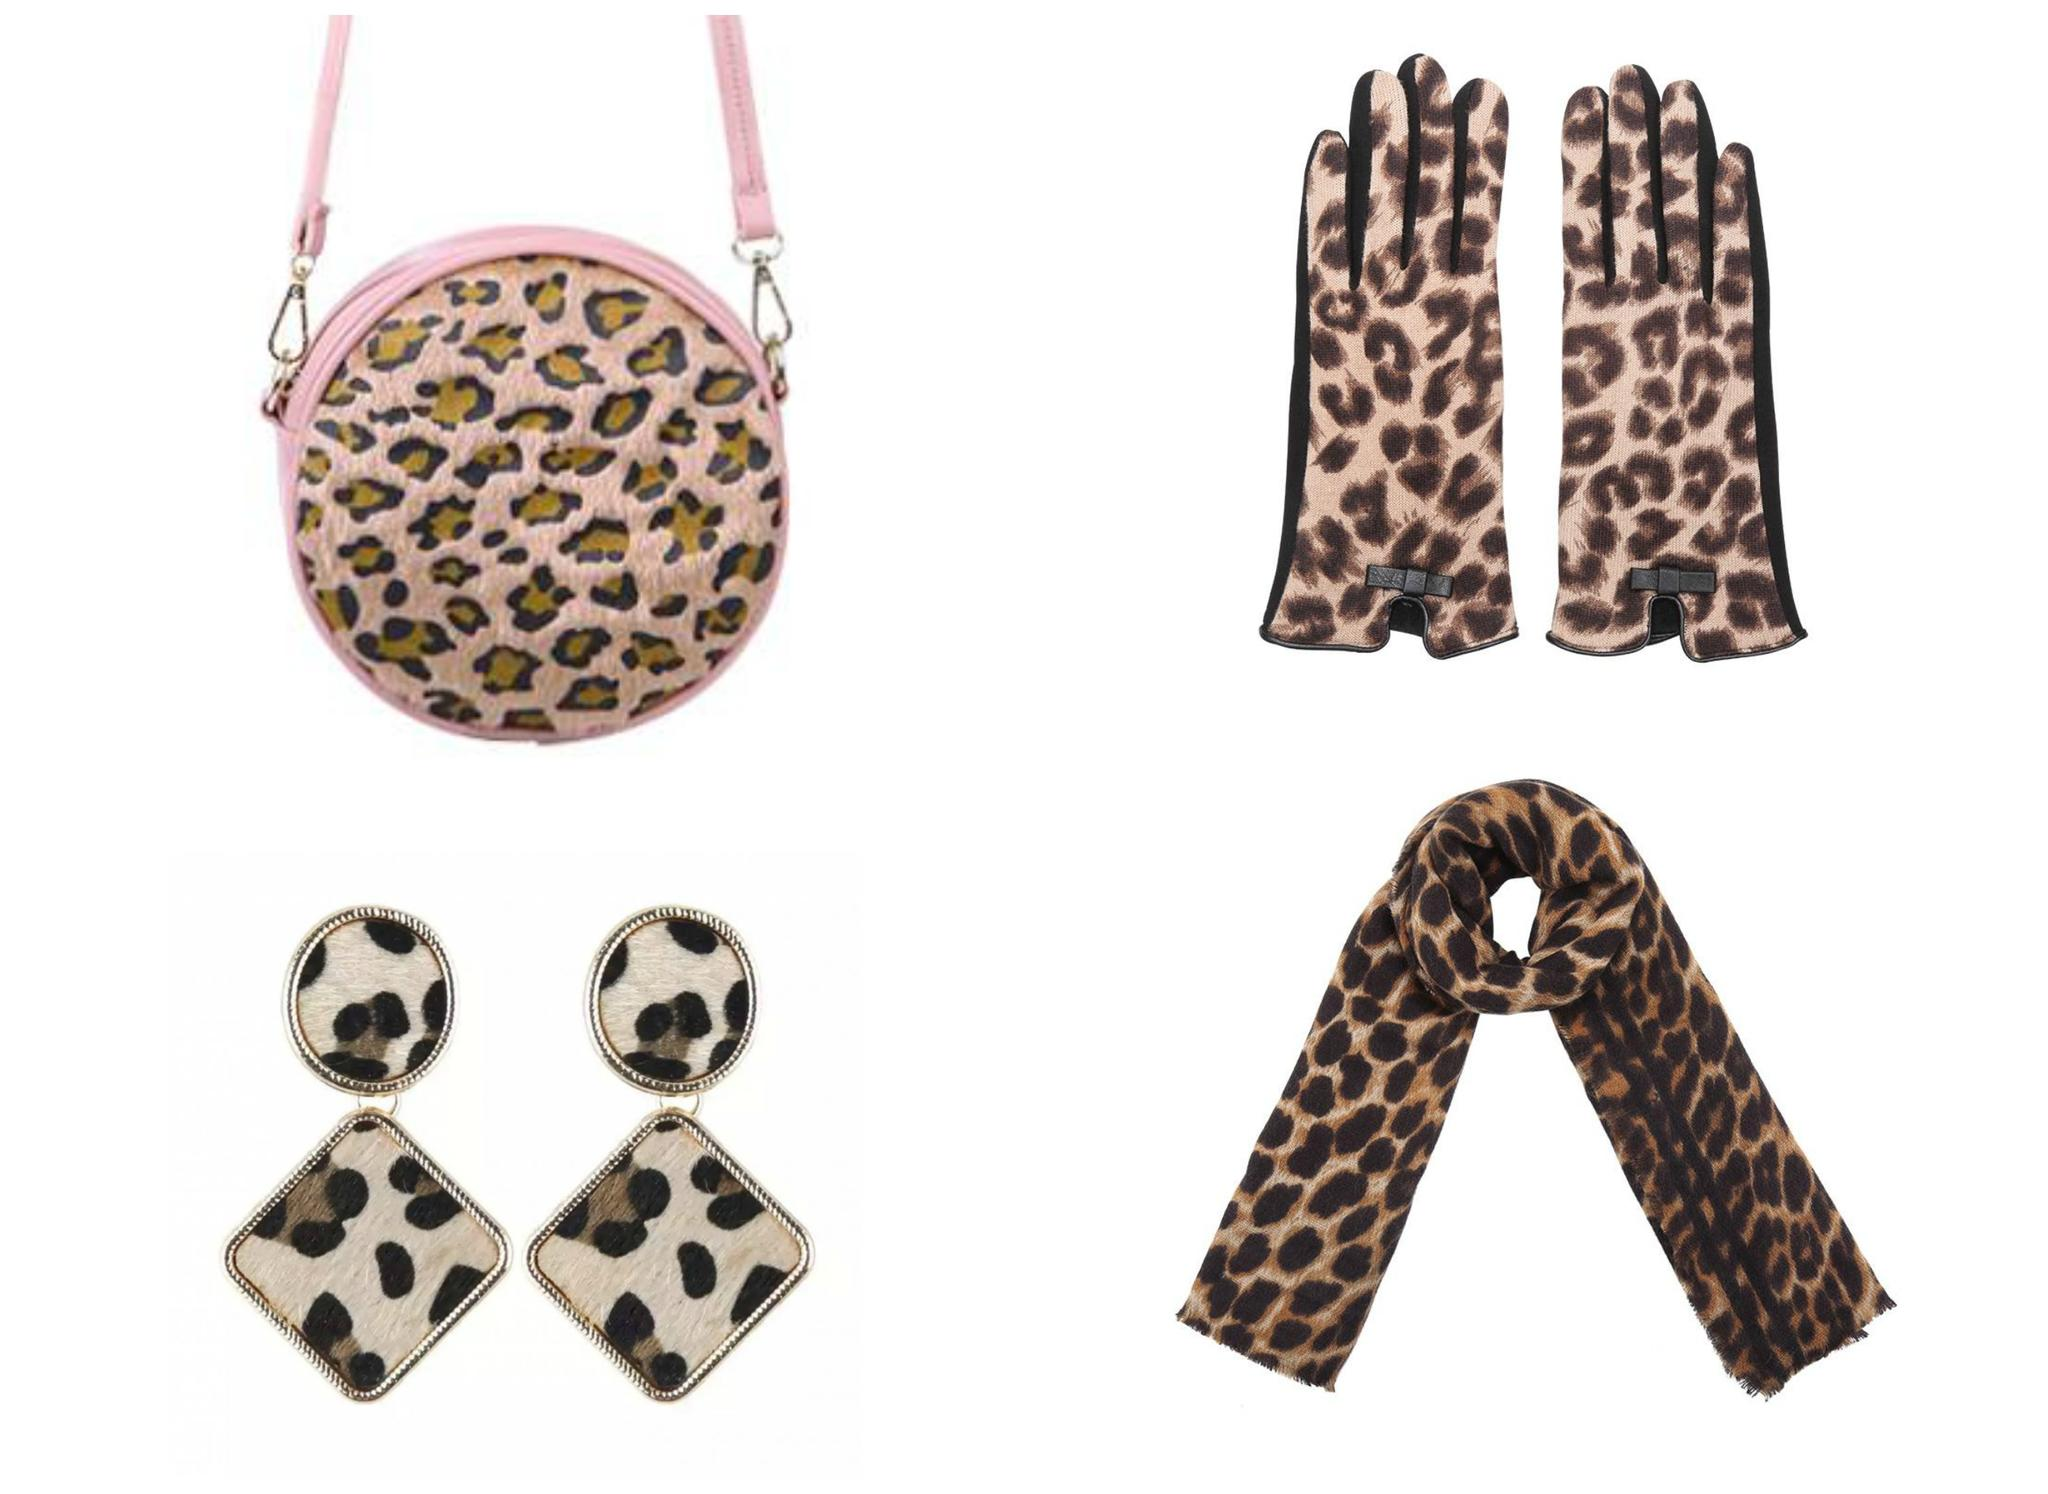 luipaardprint fashion items van fashion-click.nl